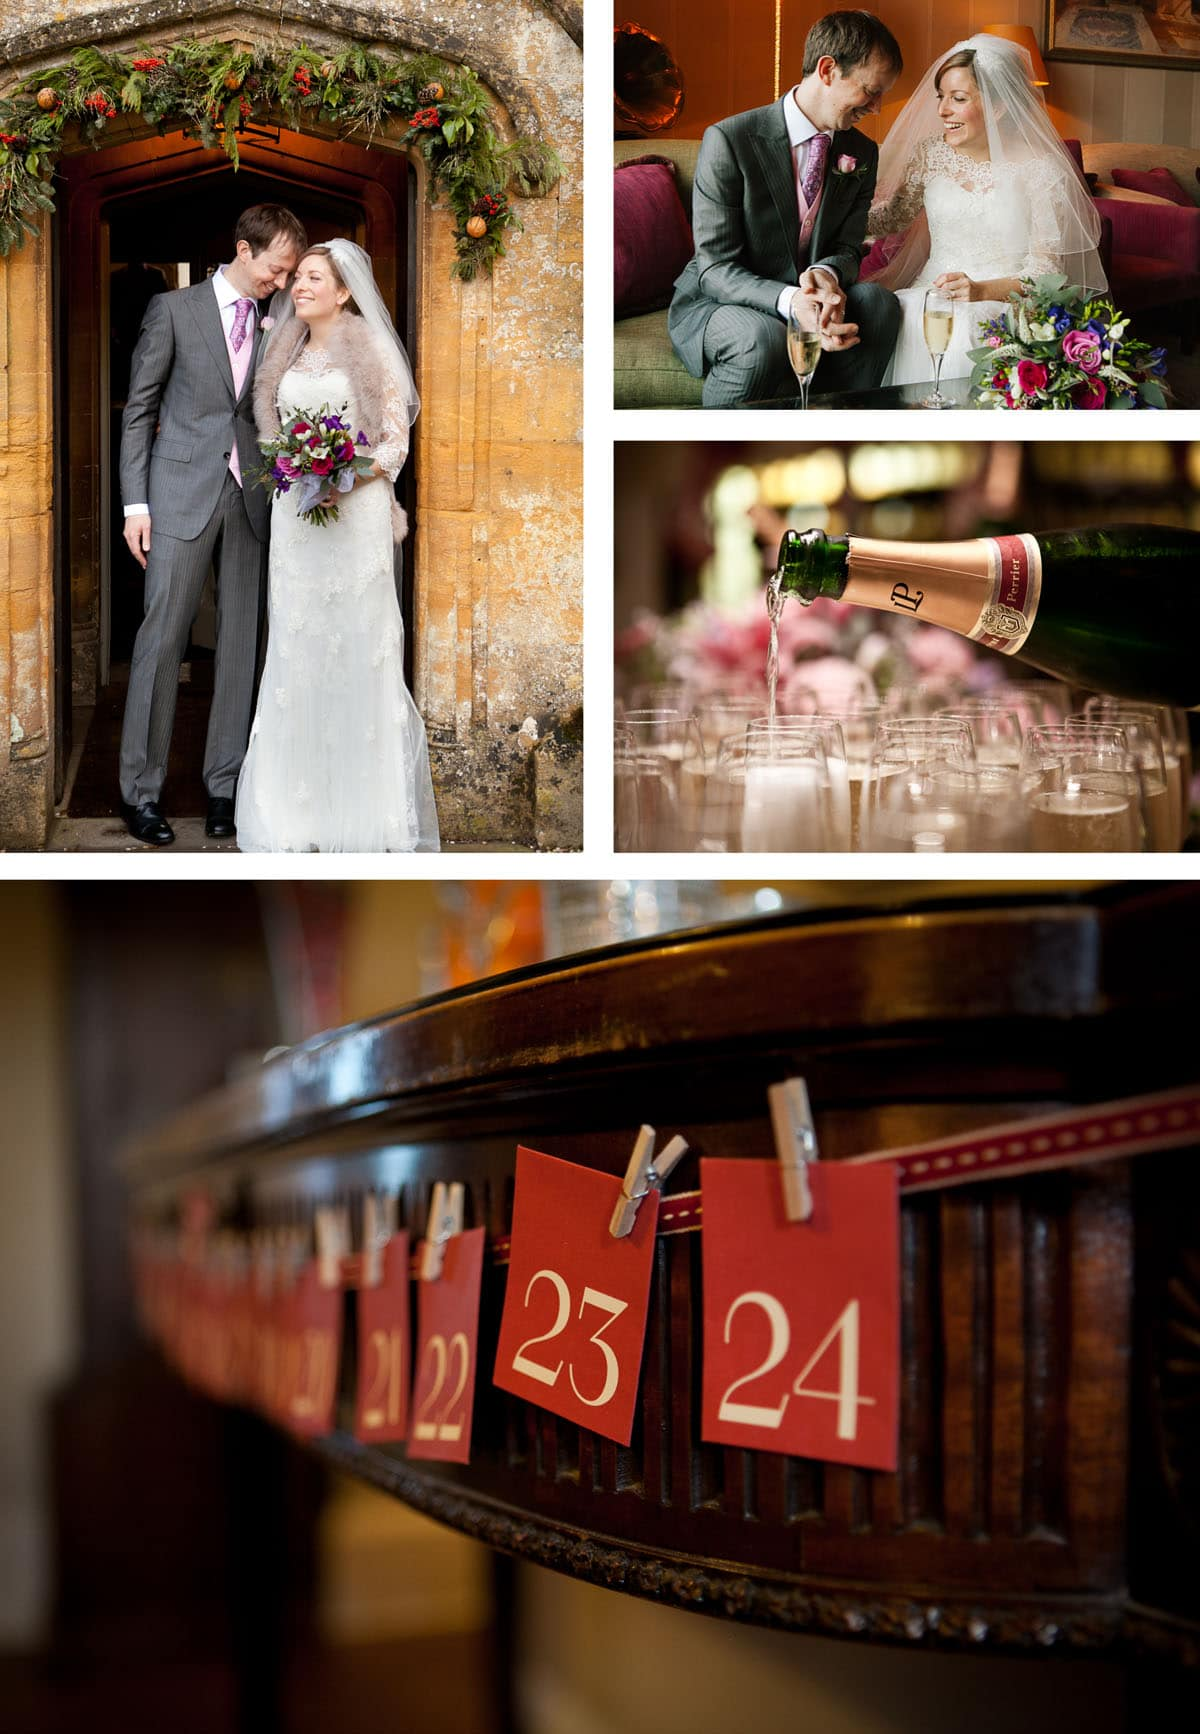 Collage of images of festive winter wedding details, champagne and red and gold colour scheme